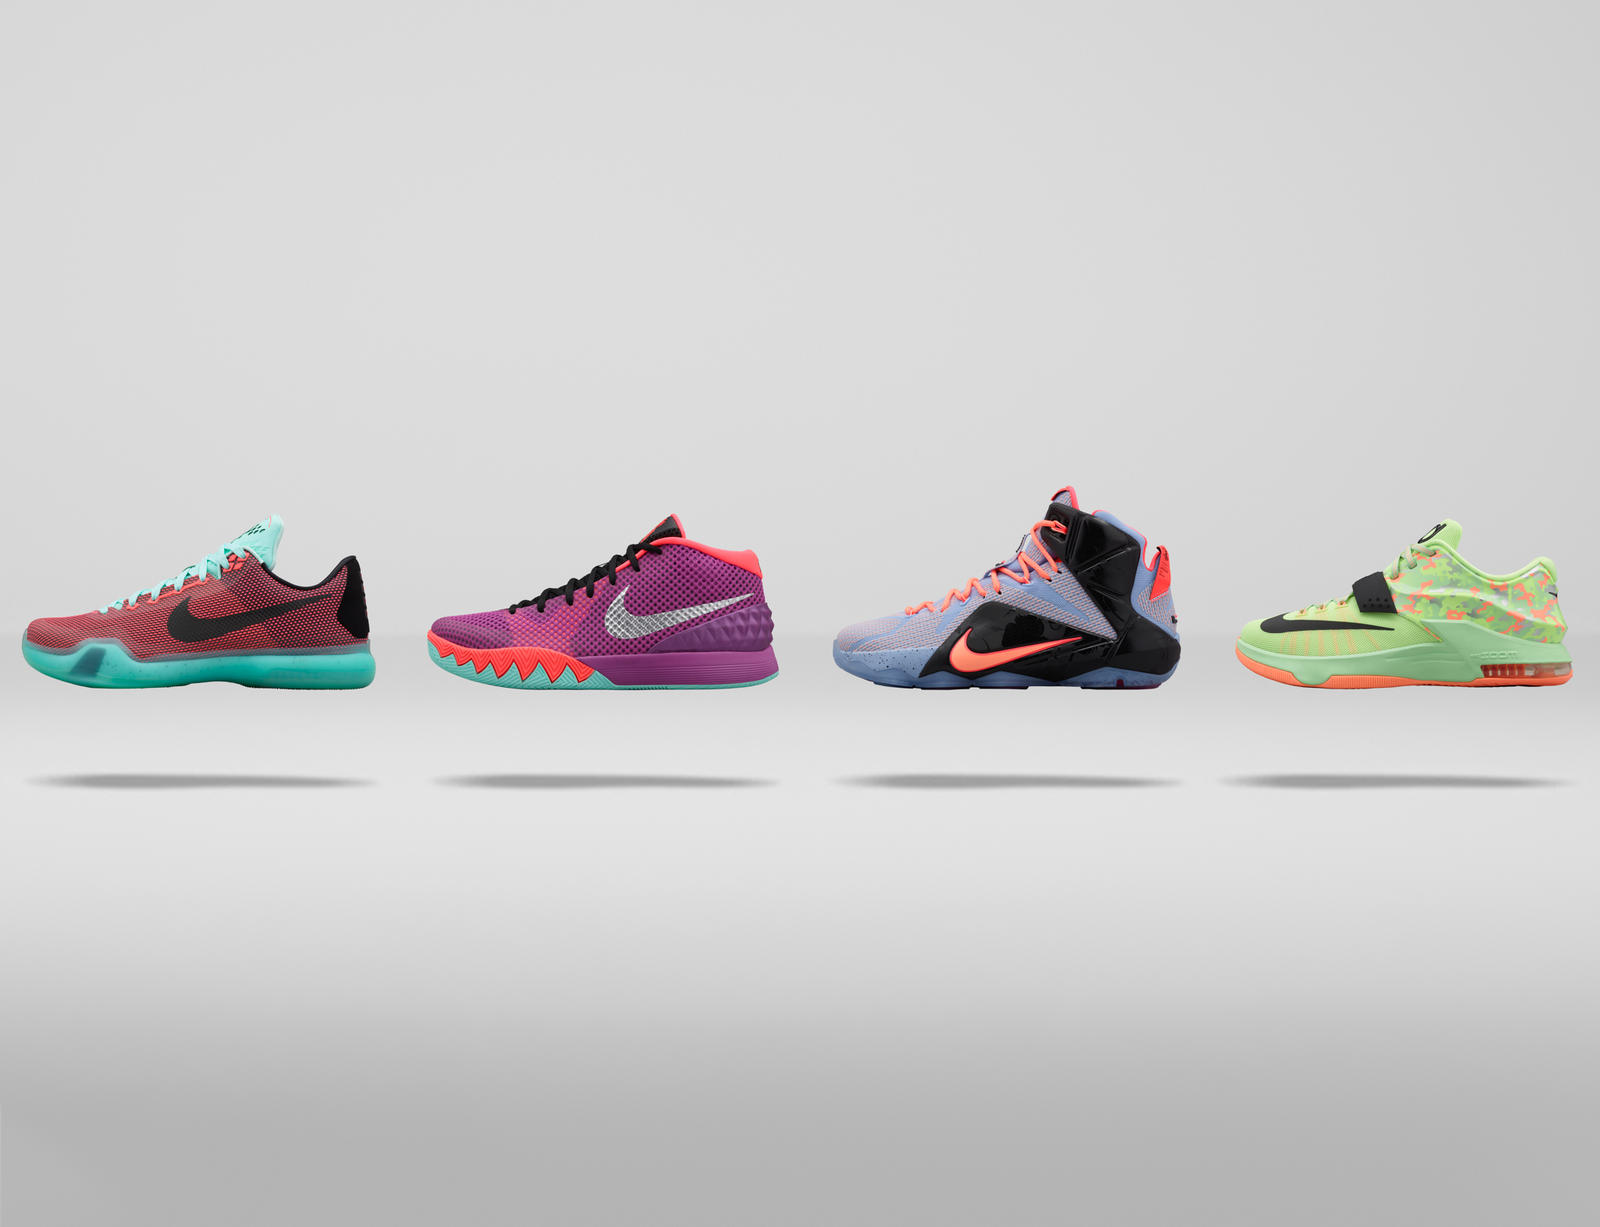 Modern Nike Easter Inspire Hues And The Basketball Graphics Pastel DYEH2IW9